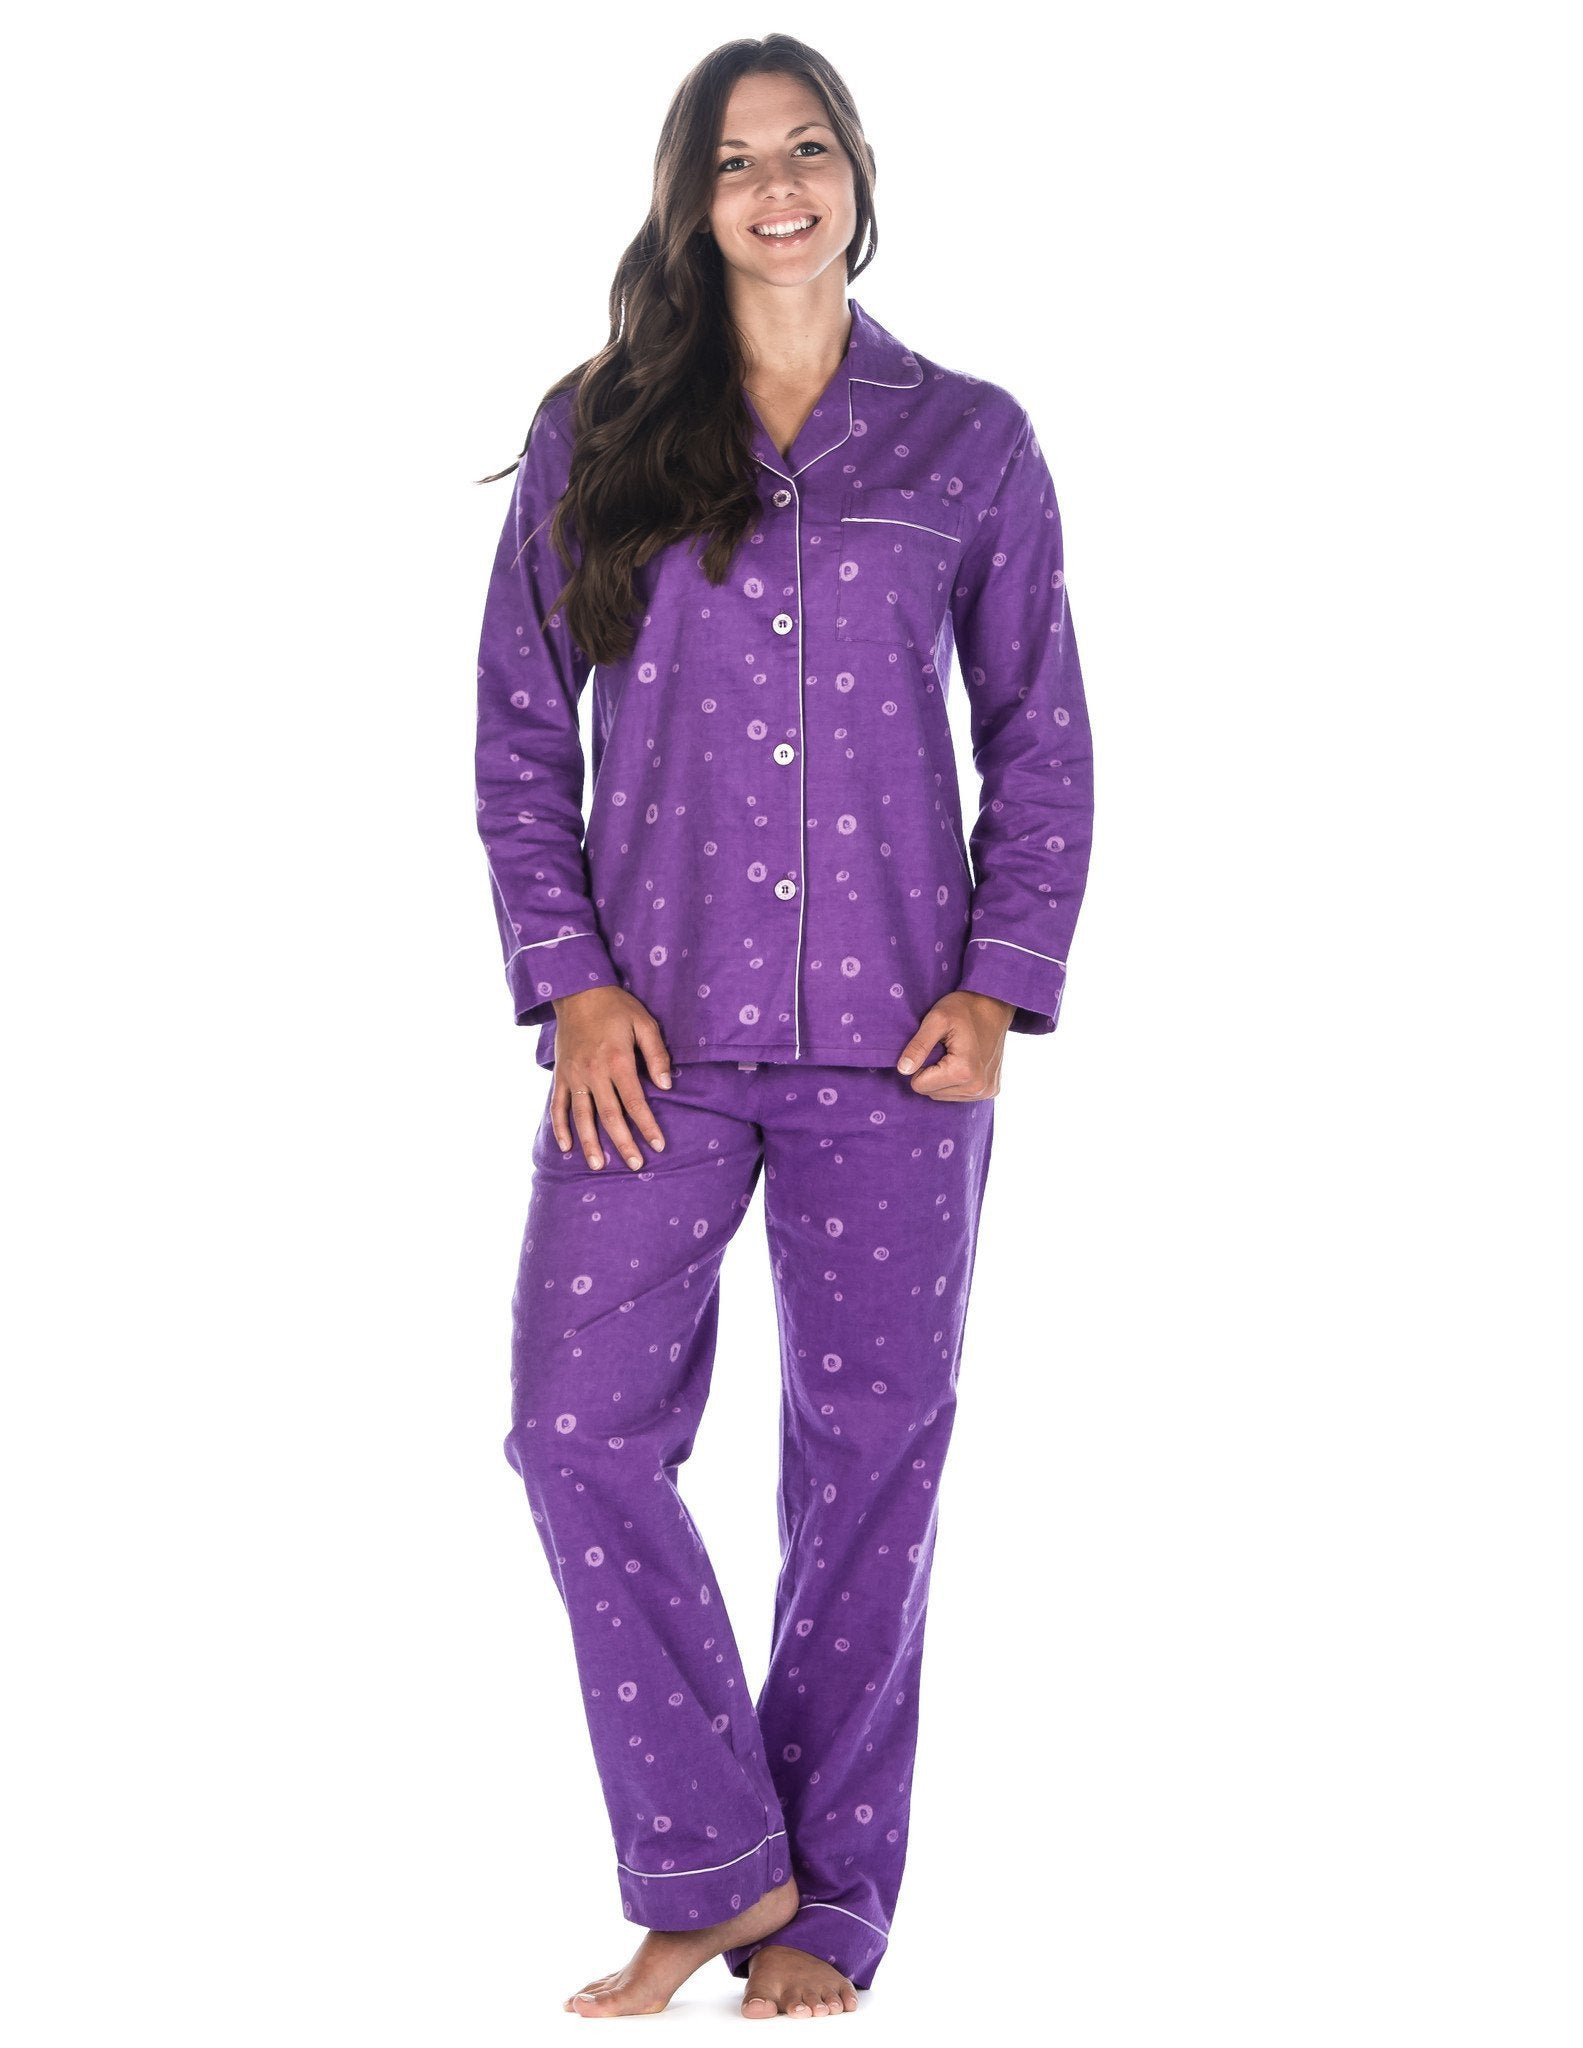 Women's Premium 100% Cotton Flannel Pajama Sleepwear Set (Relaxed Fit) - Swirl - Lavender